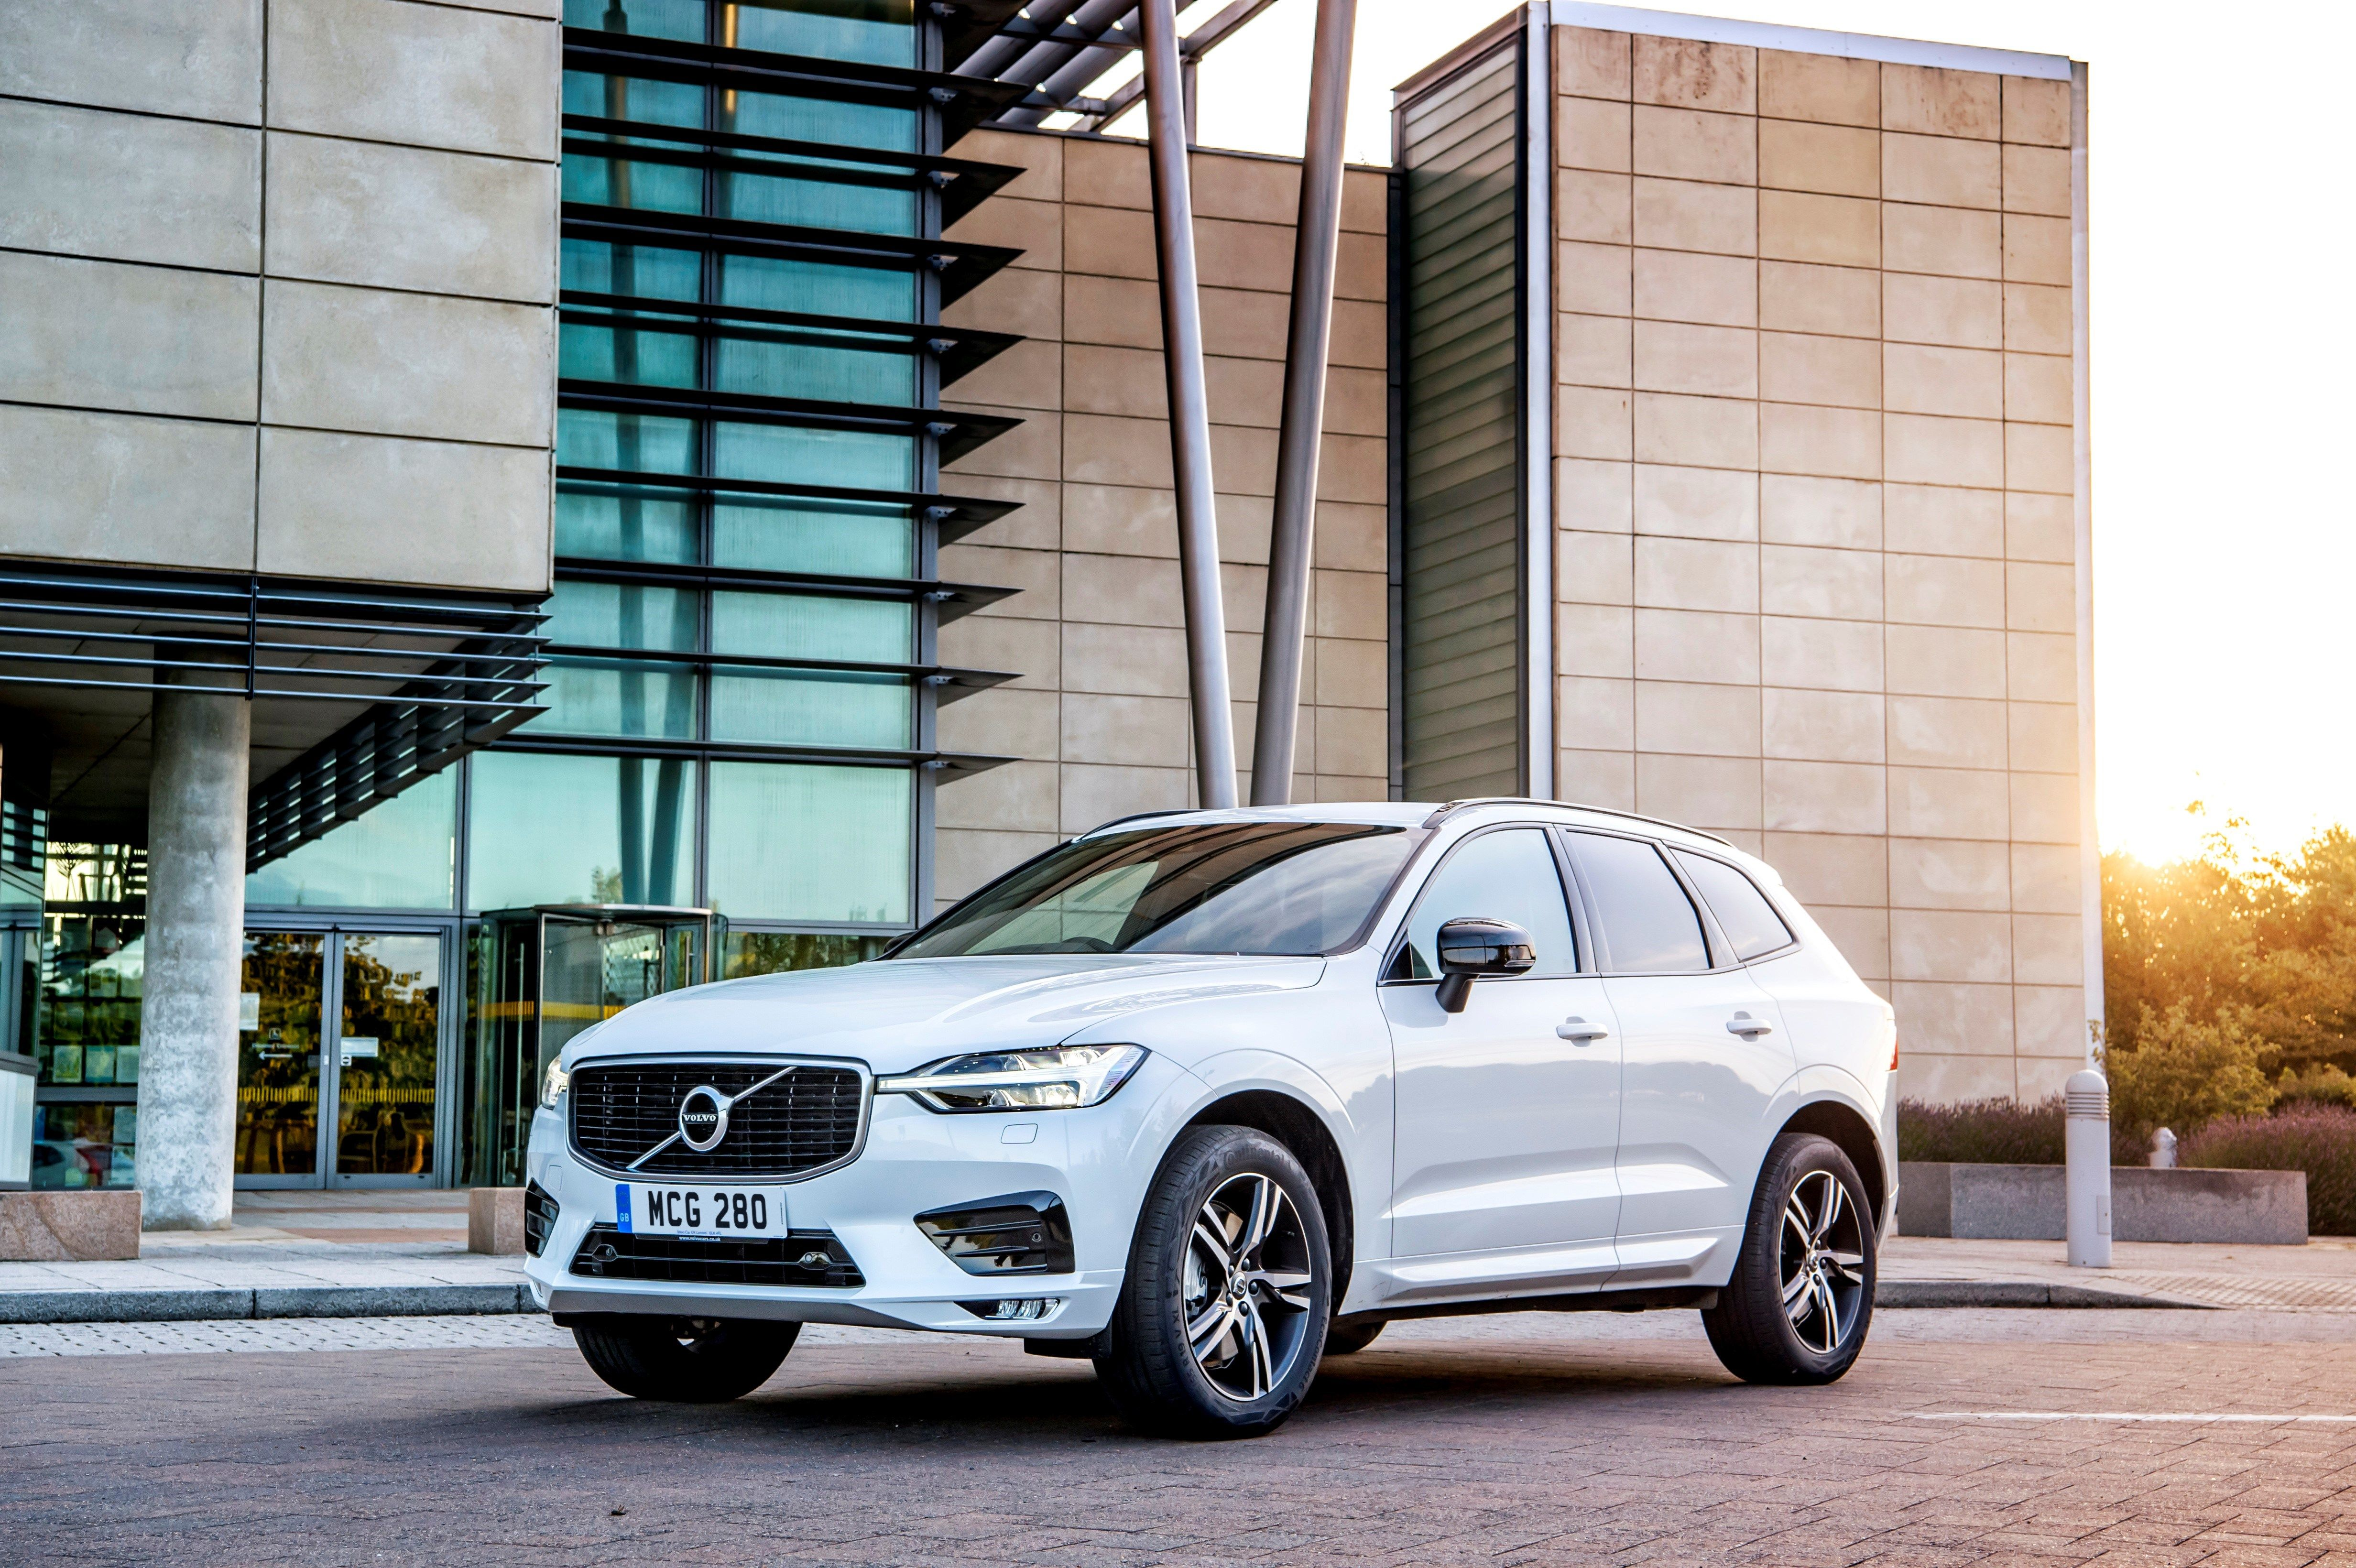 XC60 Crowned best Used Large SUV in the What Car? Used Car of the Year Awards